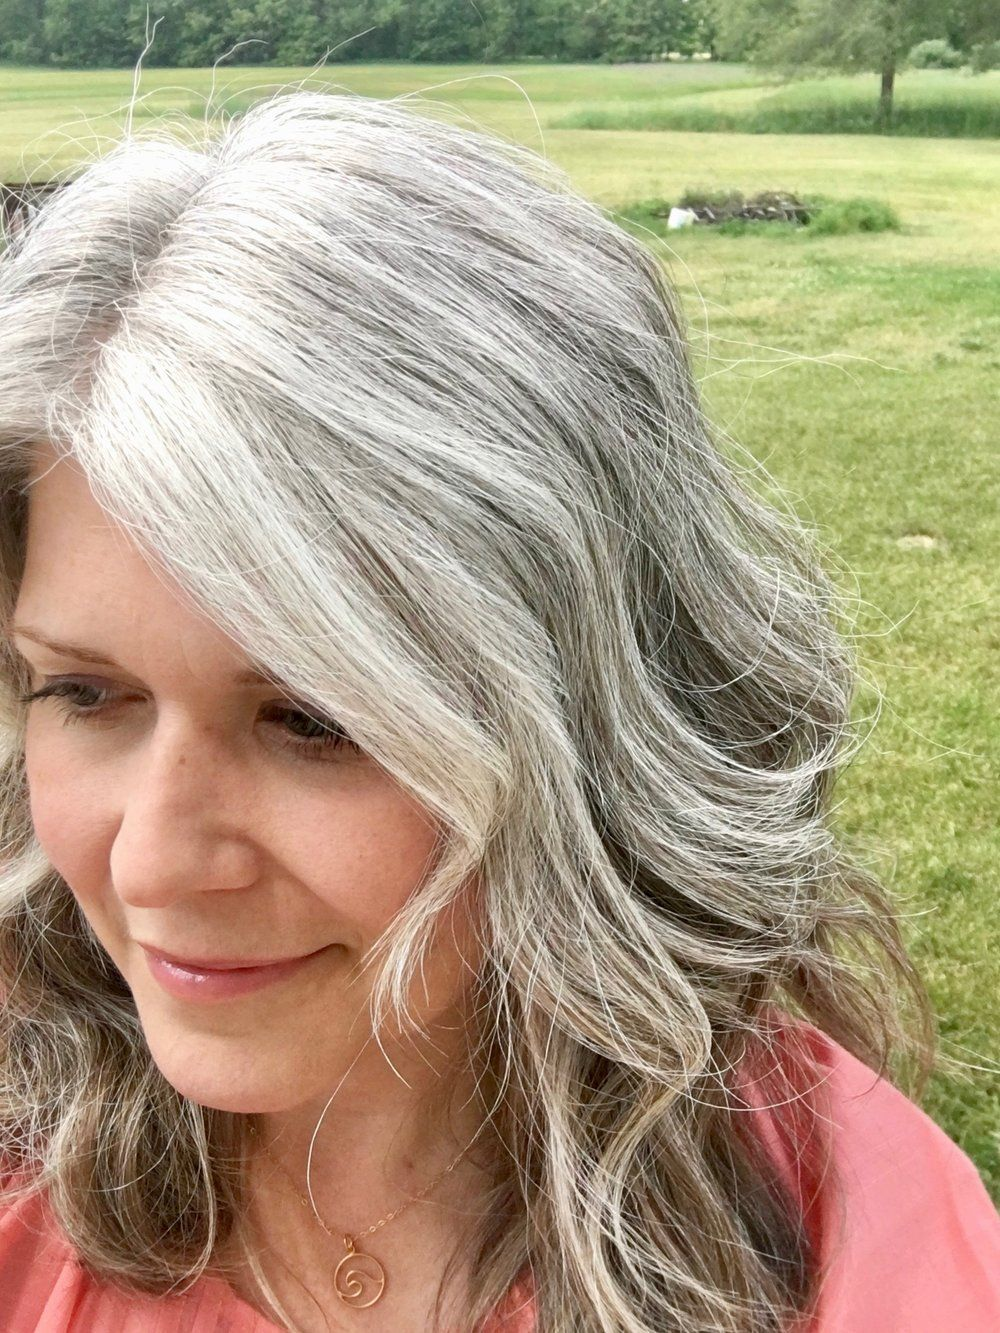 Going Gray and Growing Out My Hair. Blog — JustJaynes - Hand Stamped  Jewelry - White Hair bdae0930c